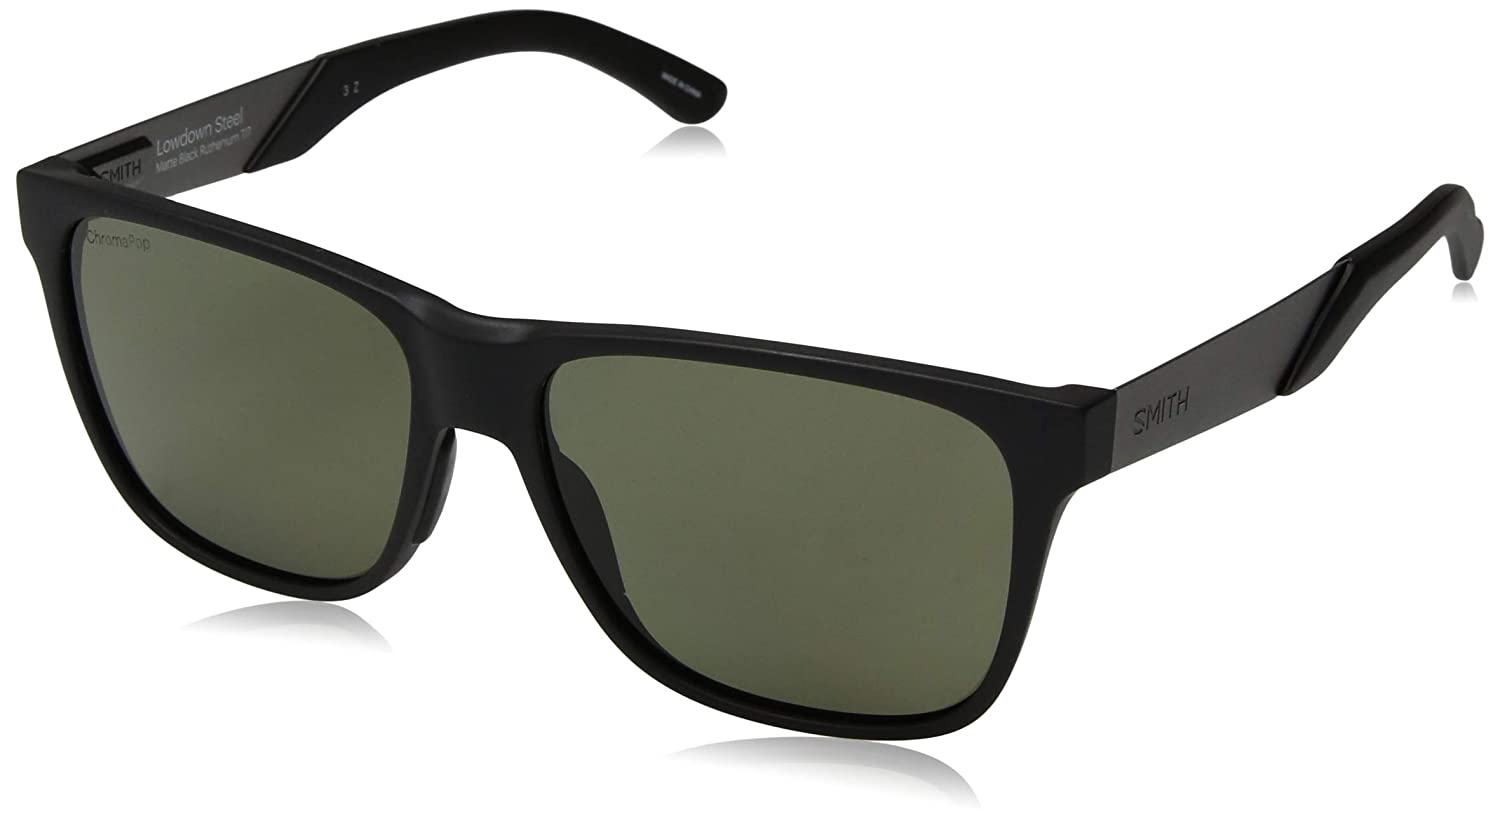 56 Occhiali da Sole Uomo Lowdown Steel スミスオプティクス SMITH OPTICS Rut Mtblk